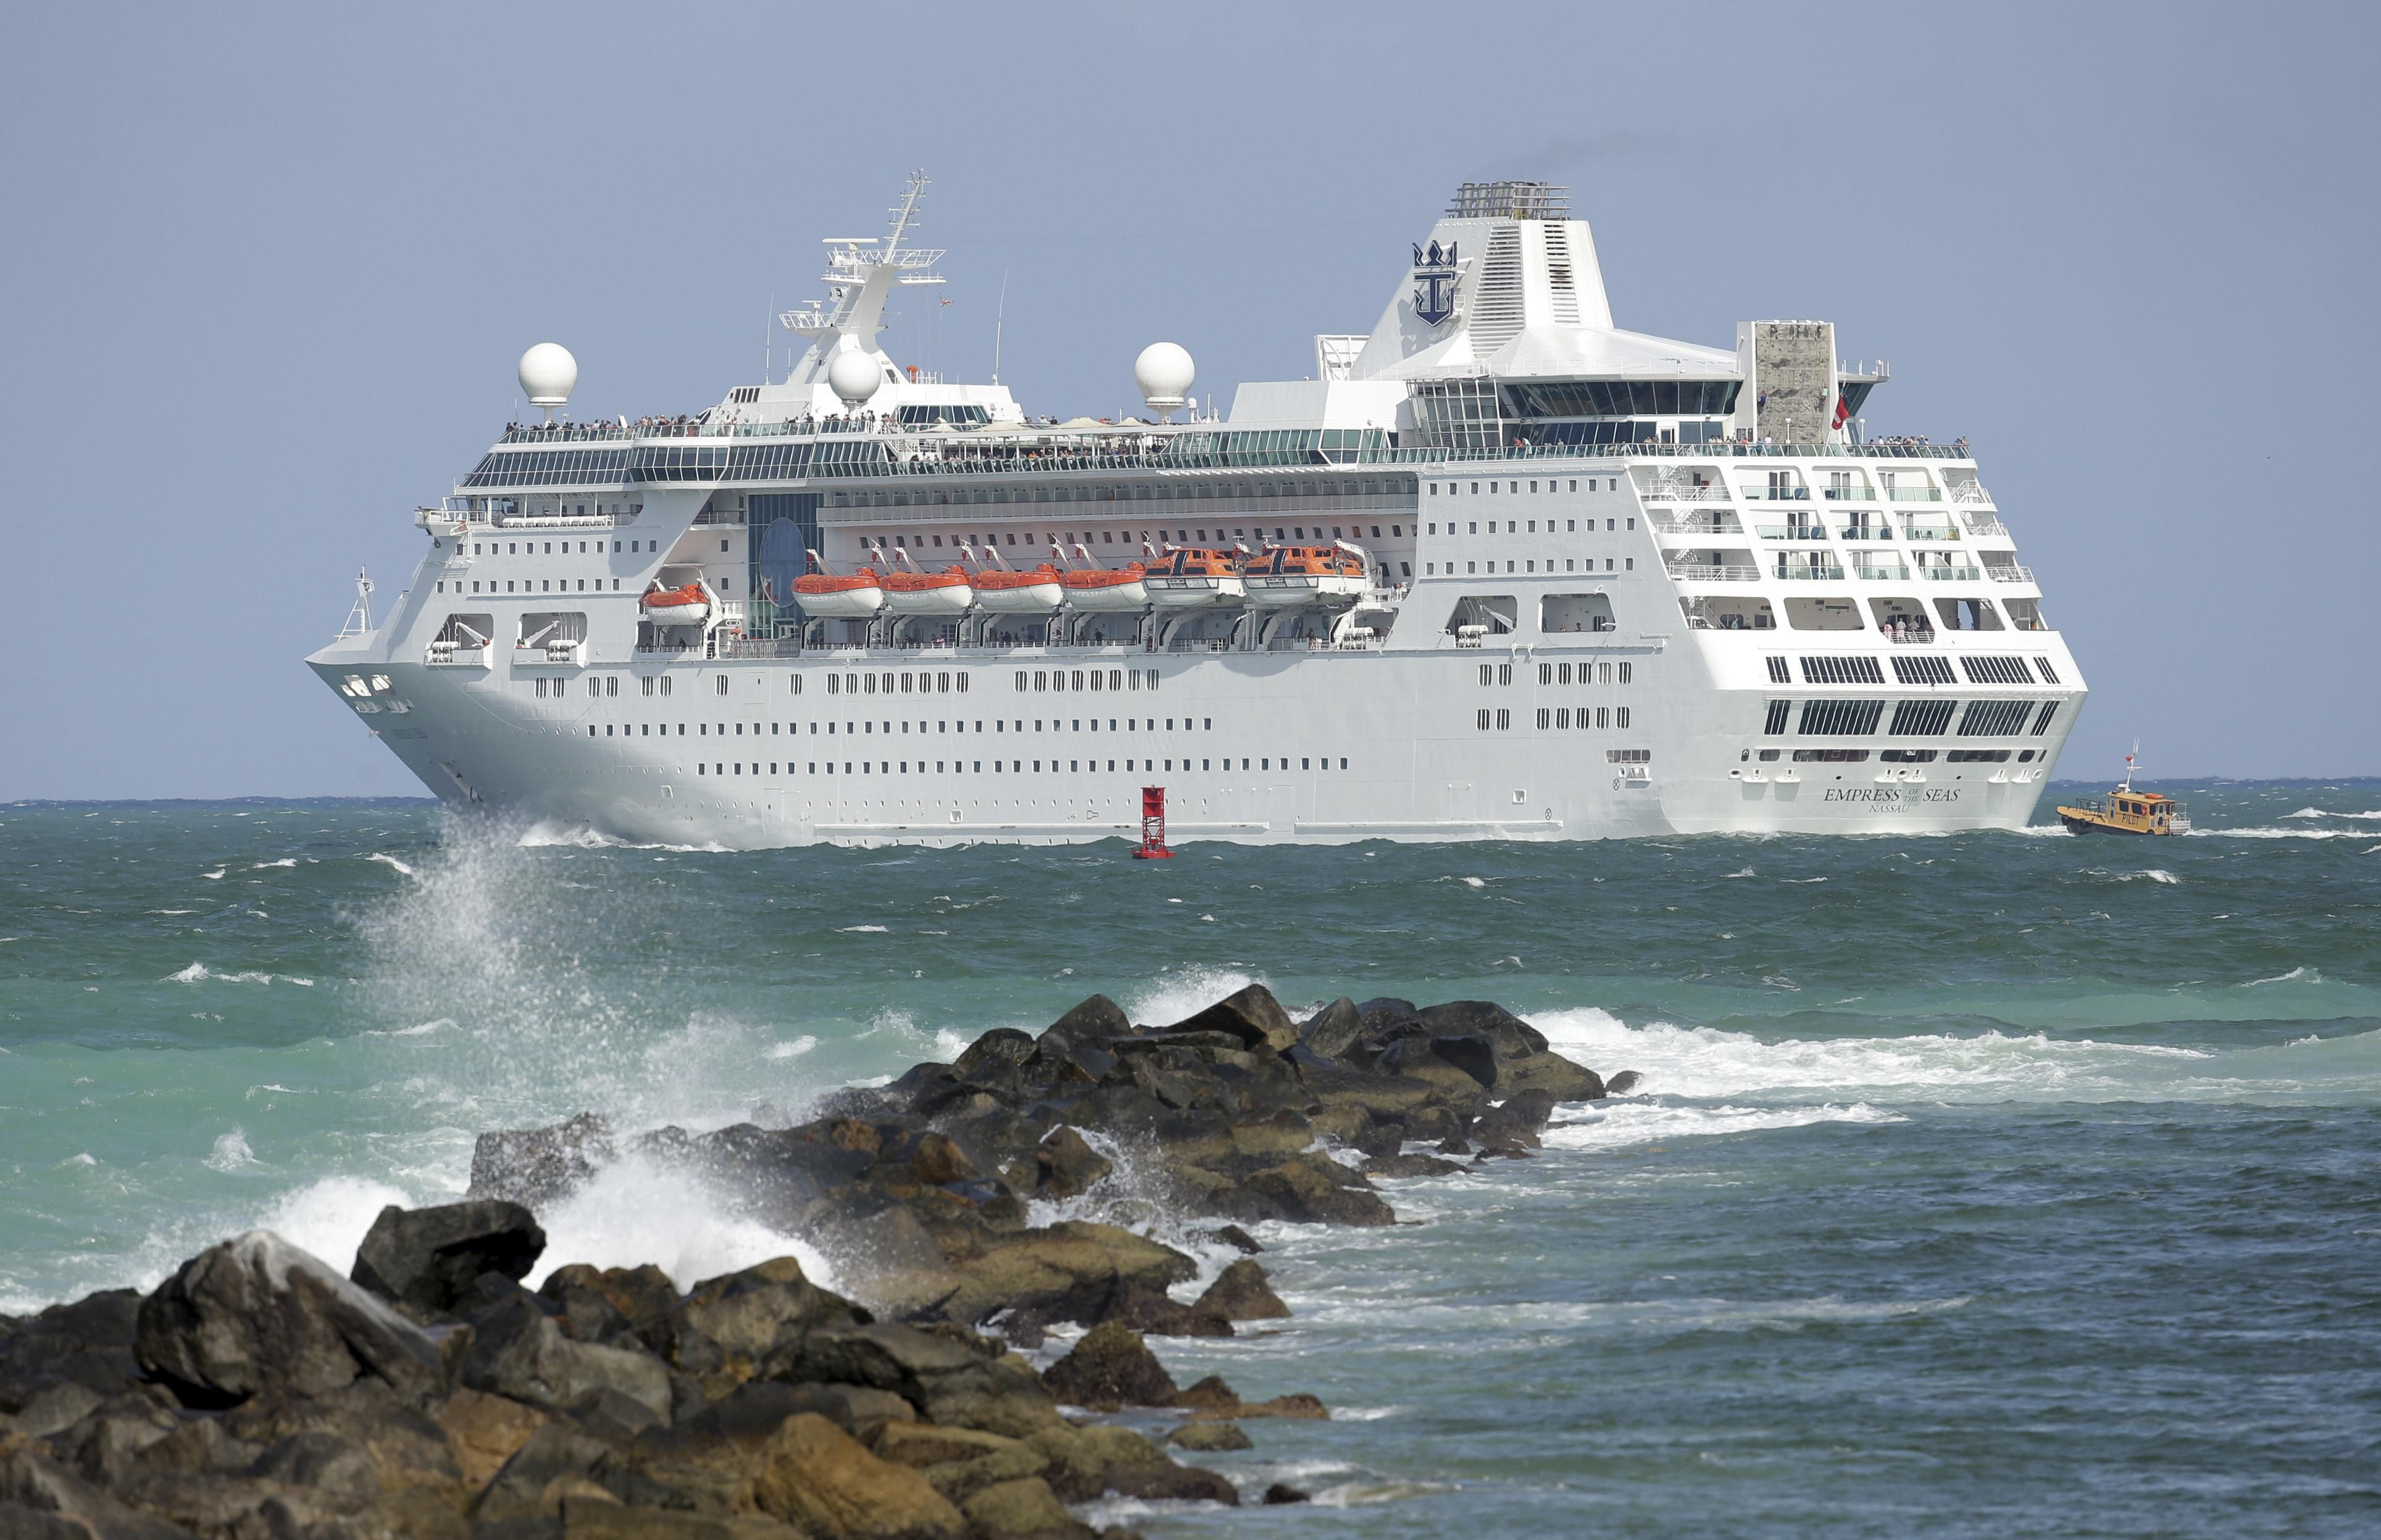 The Opinion Enjoining The CDC's Covid Rules About Cruise Ship Safety Should Be Reversed